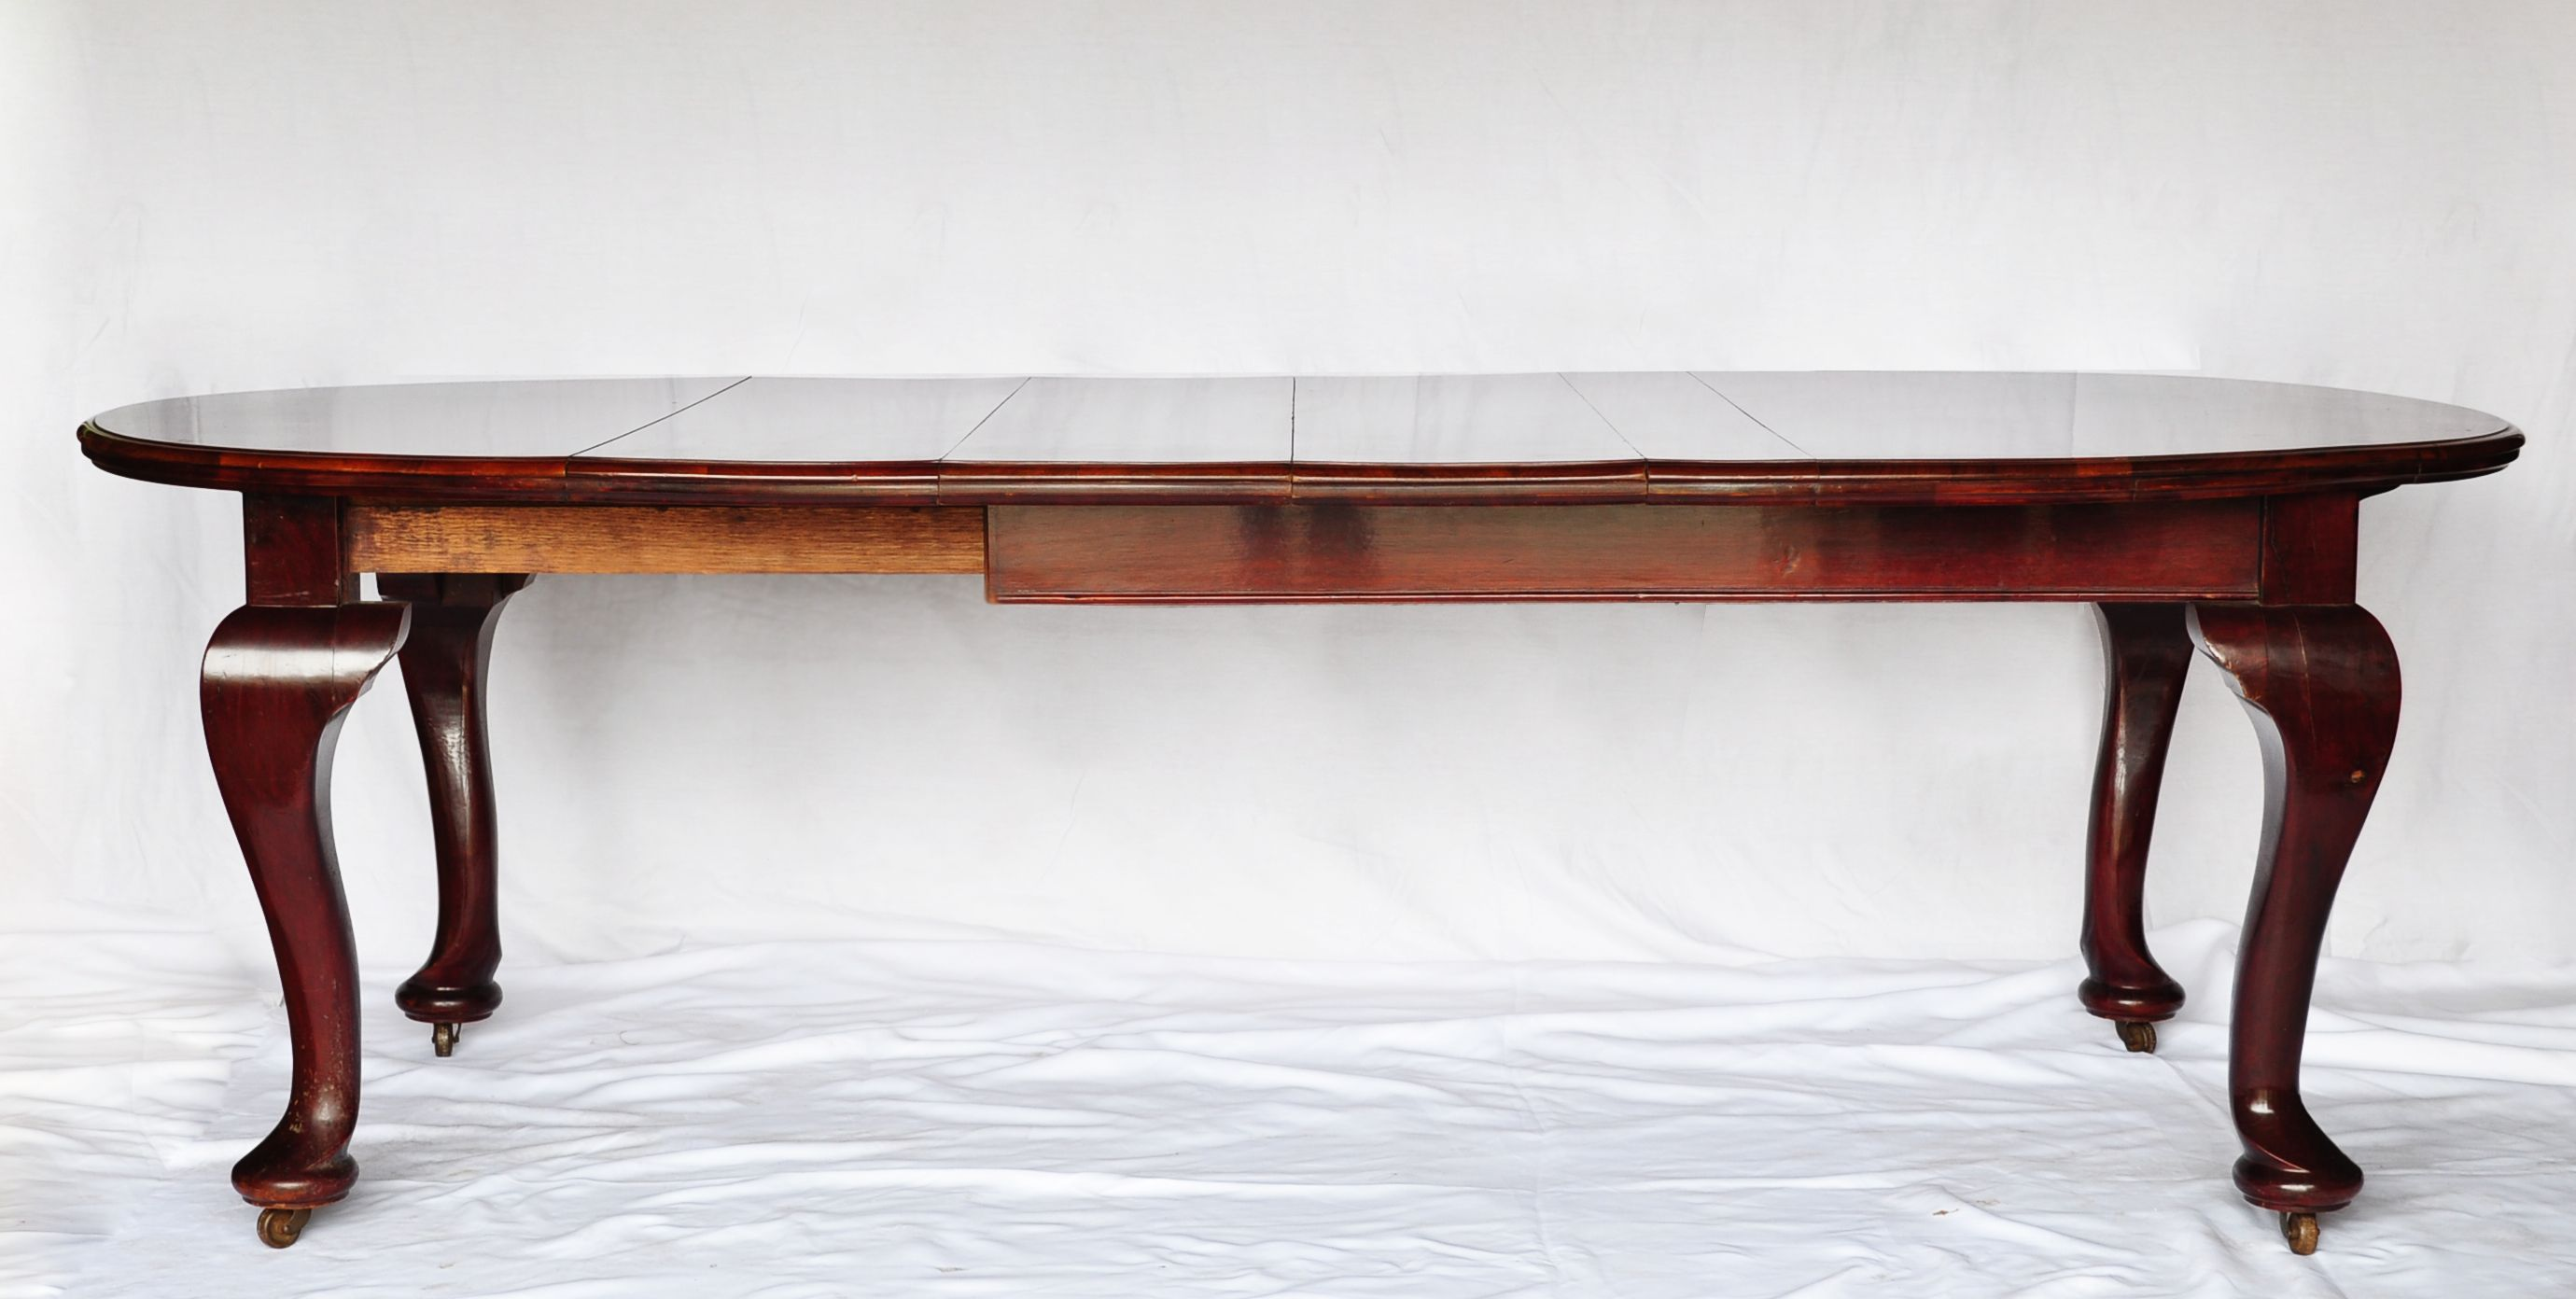 Reproduction extendable mahogany table with large cabriole legs